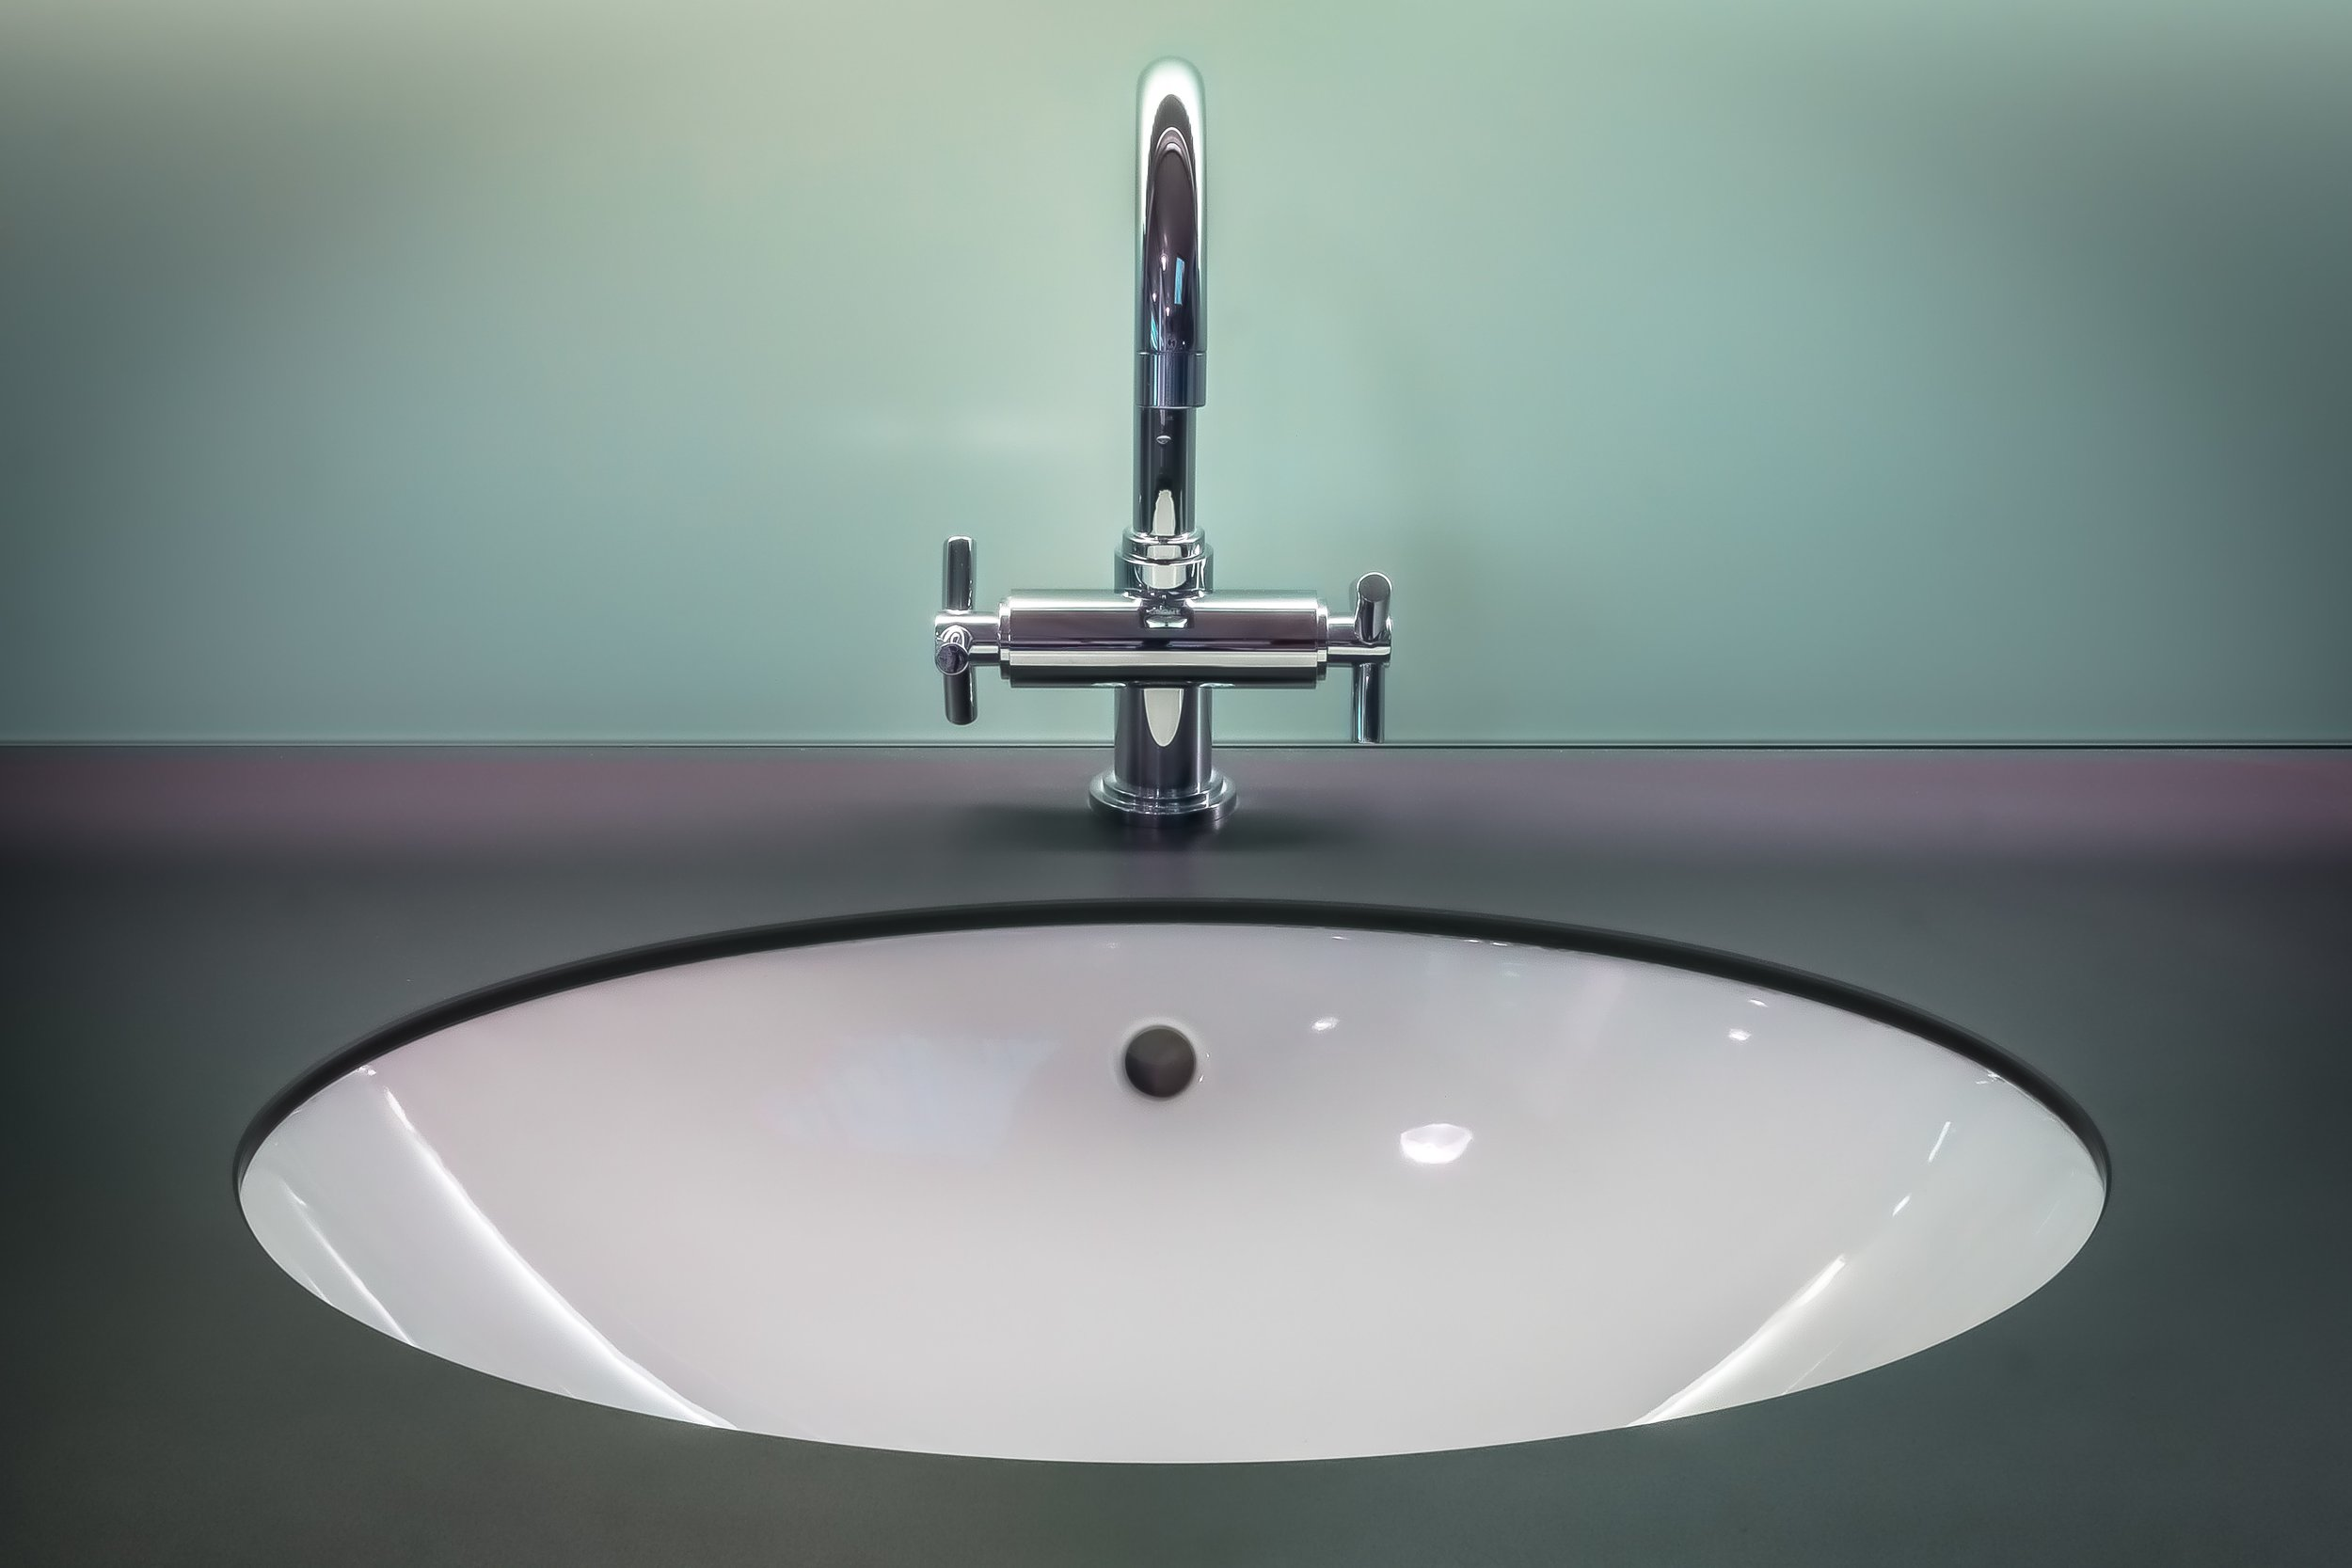 bathroom-clean-faucet-145512.jpg